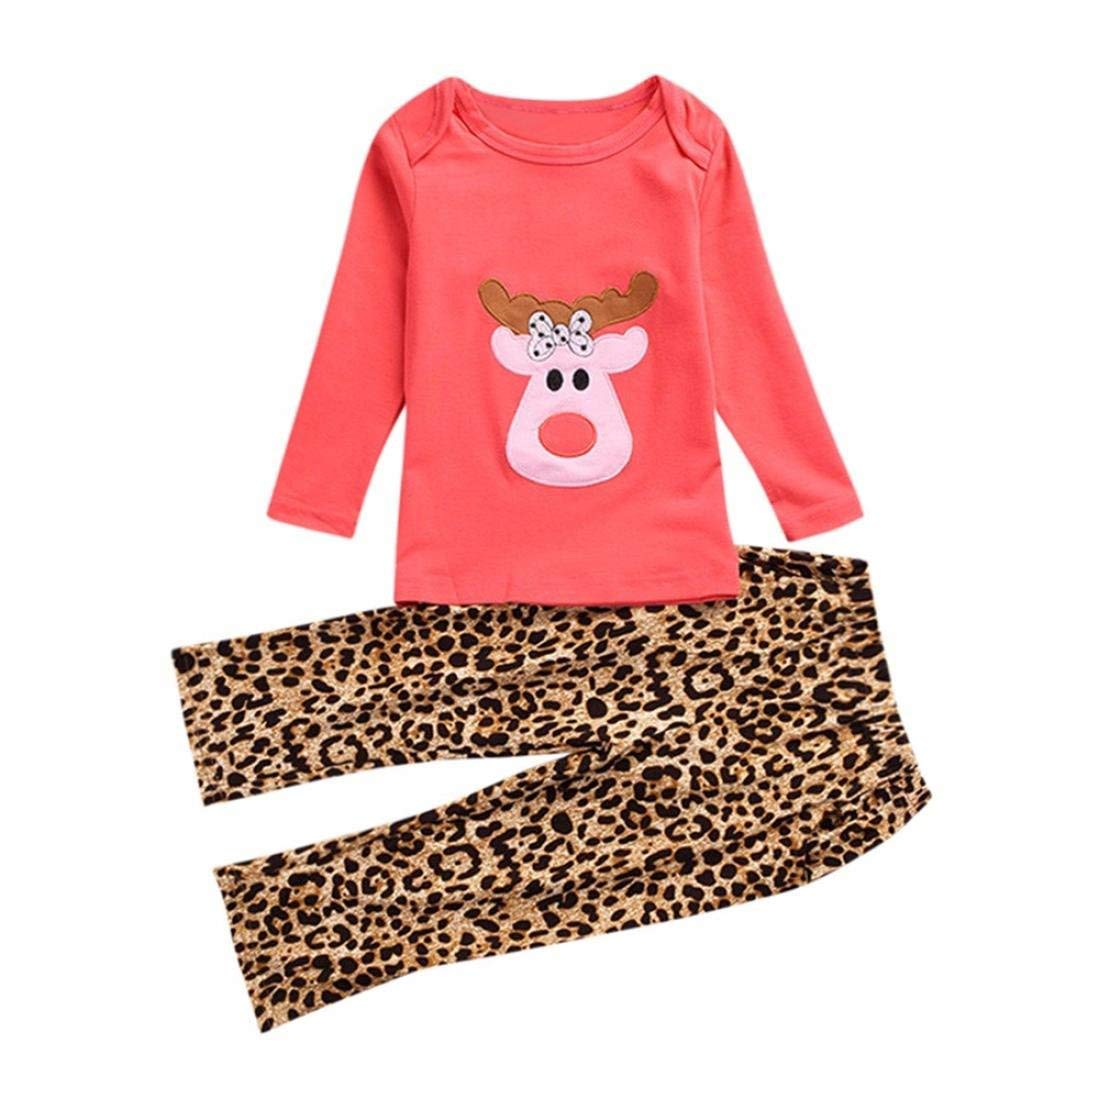 7ee9e59193 Get Quotations · Dreammimi Kids Clothes Girls Clothes Long Sleeve Deer T- Shirt Leopard Pants Childrens Clothes